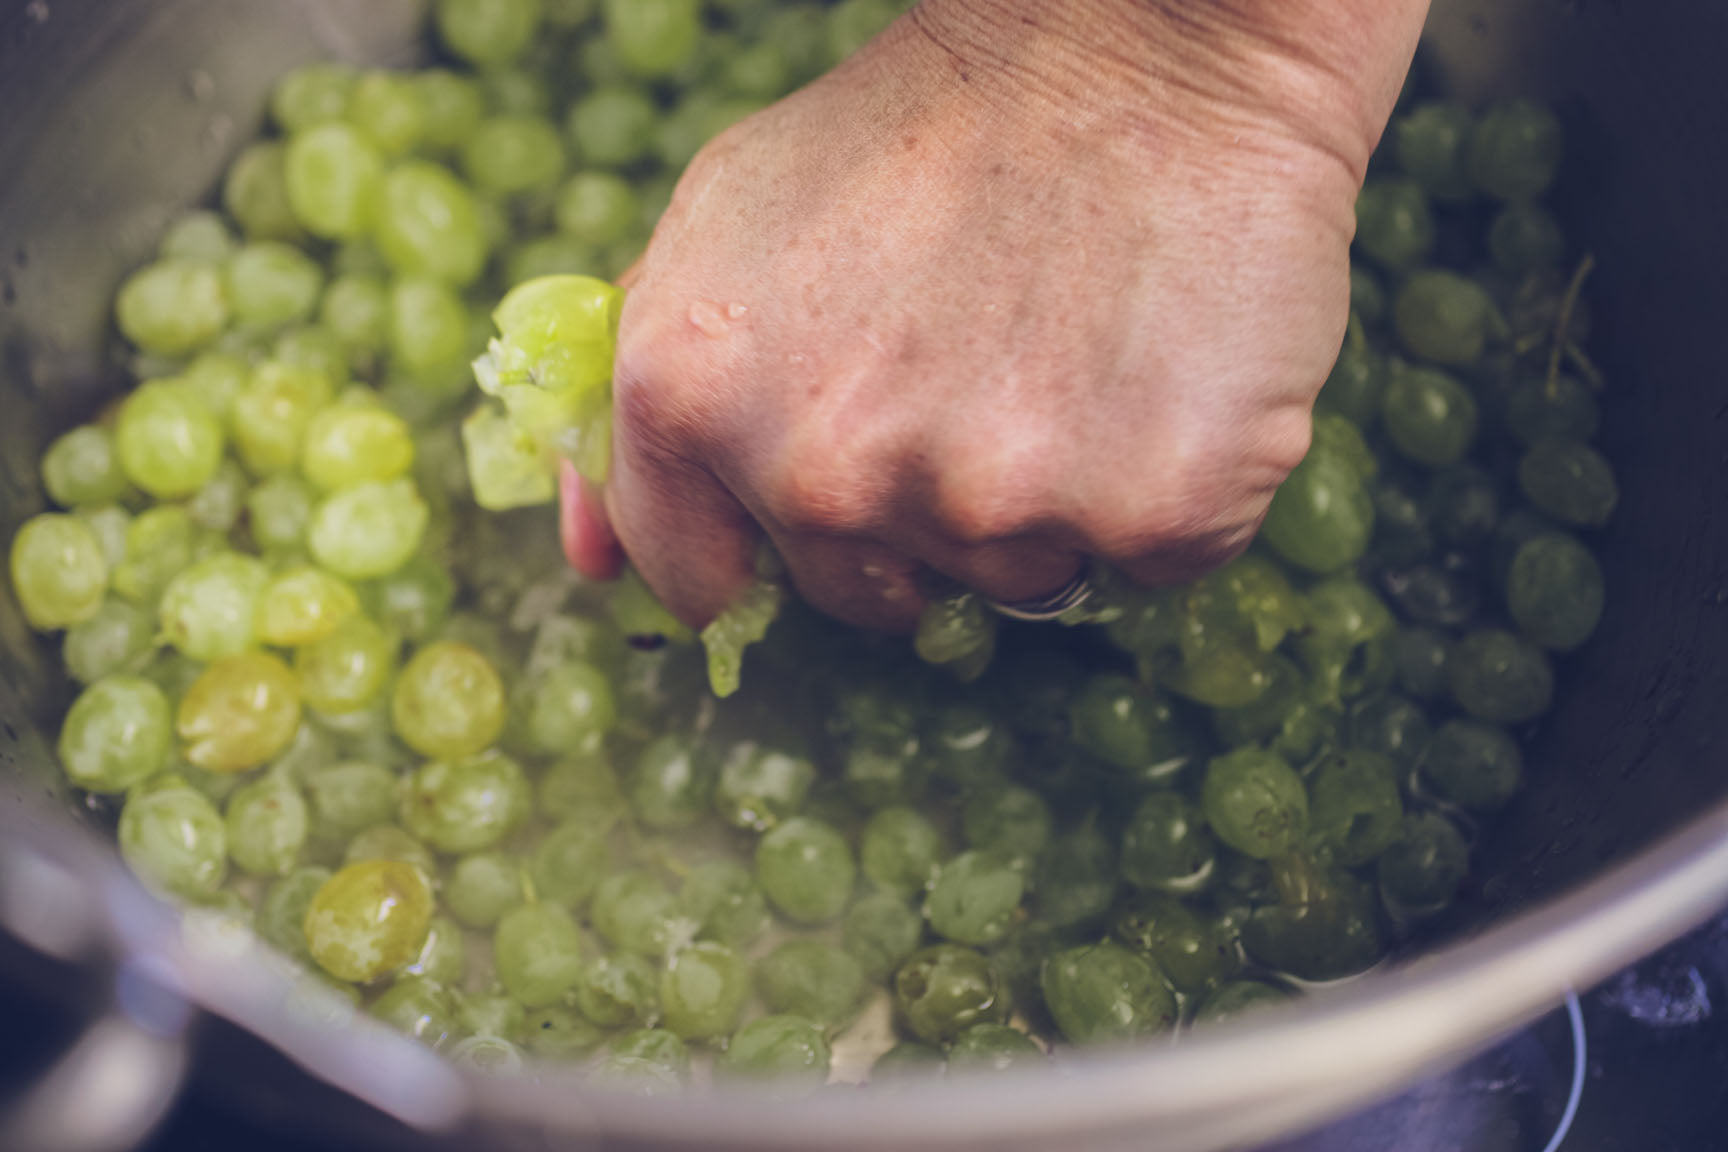 crush the grapes by hand